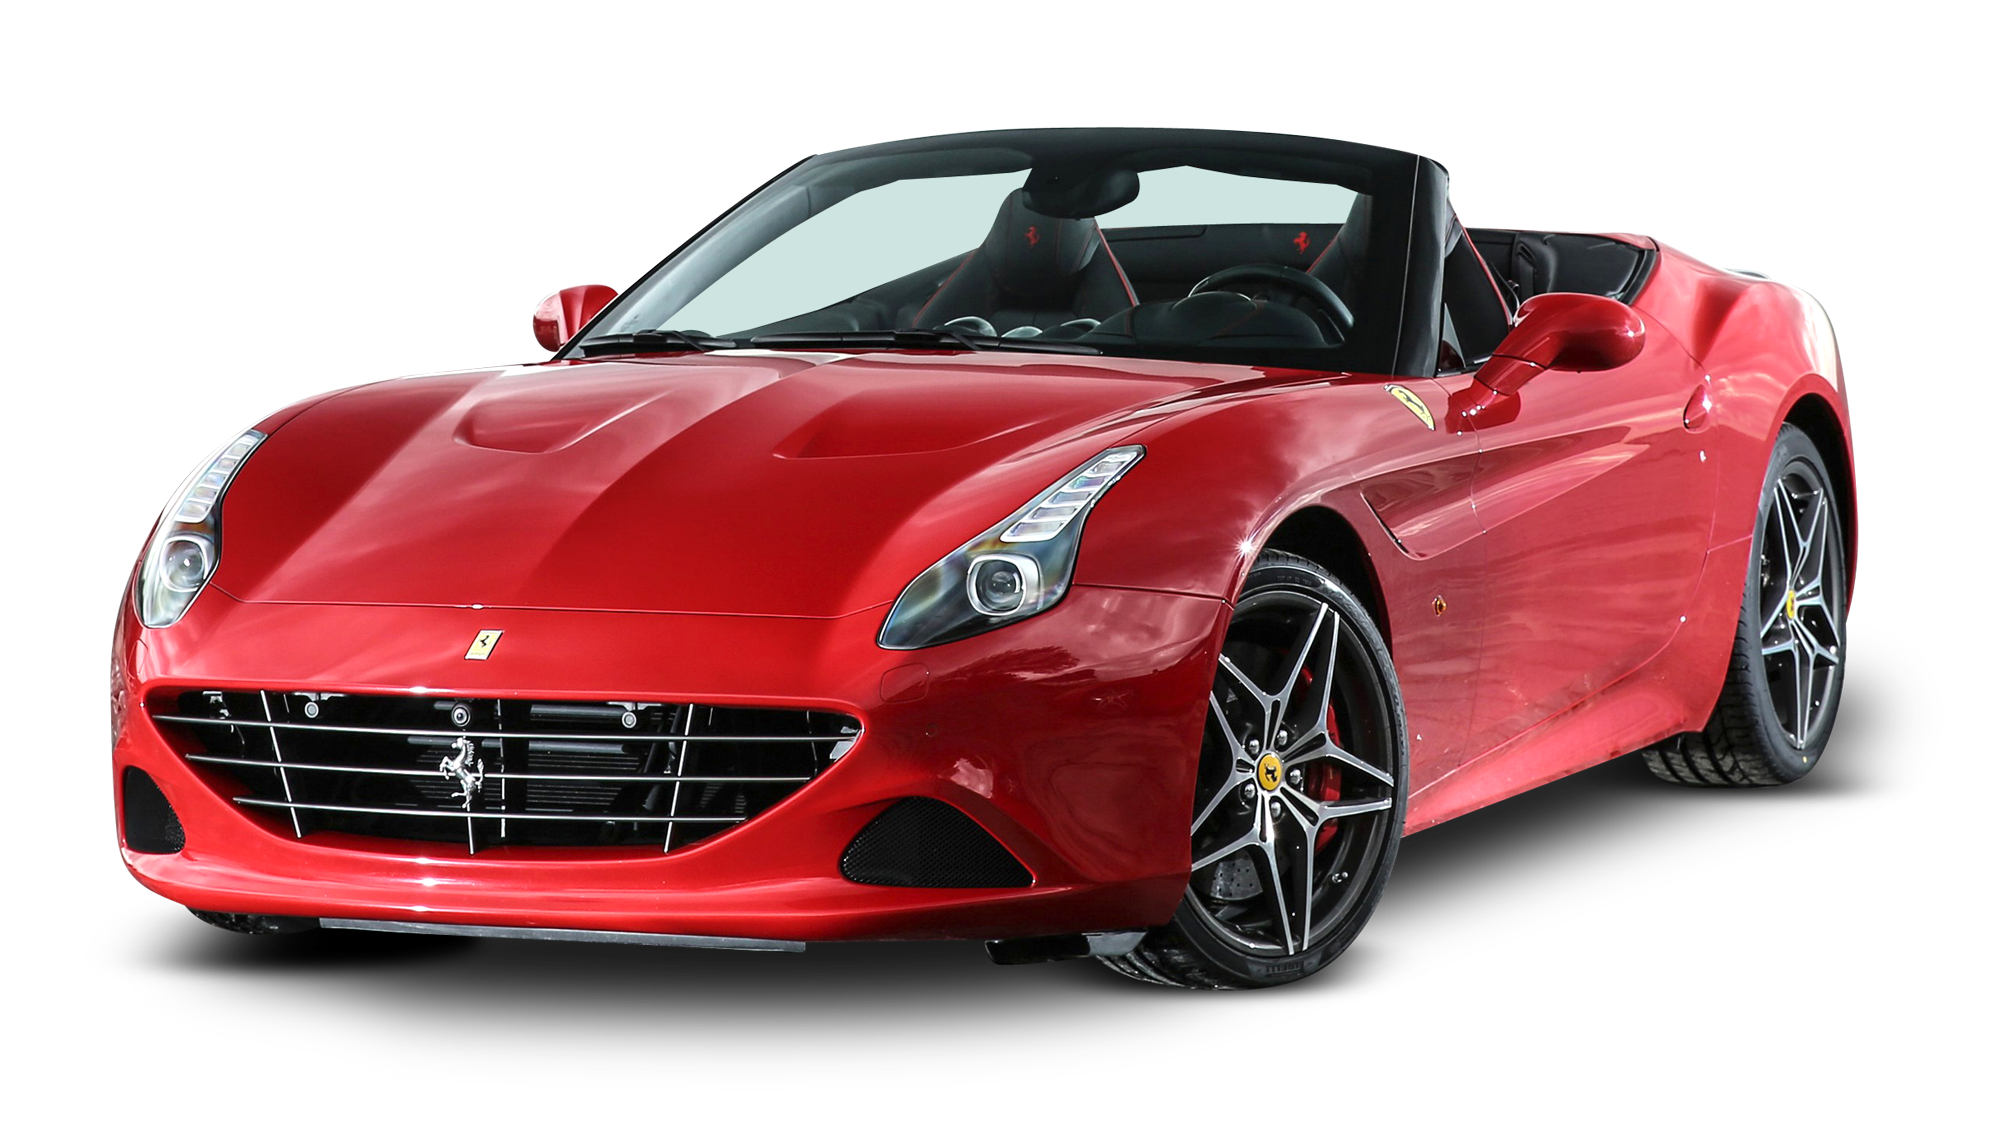 Red car clipart png vector royalty free Ferrari California Red Car PNG Image - PurePNG | Free transparent ... vector royalty free